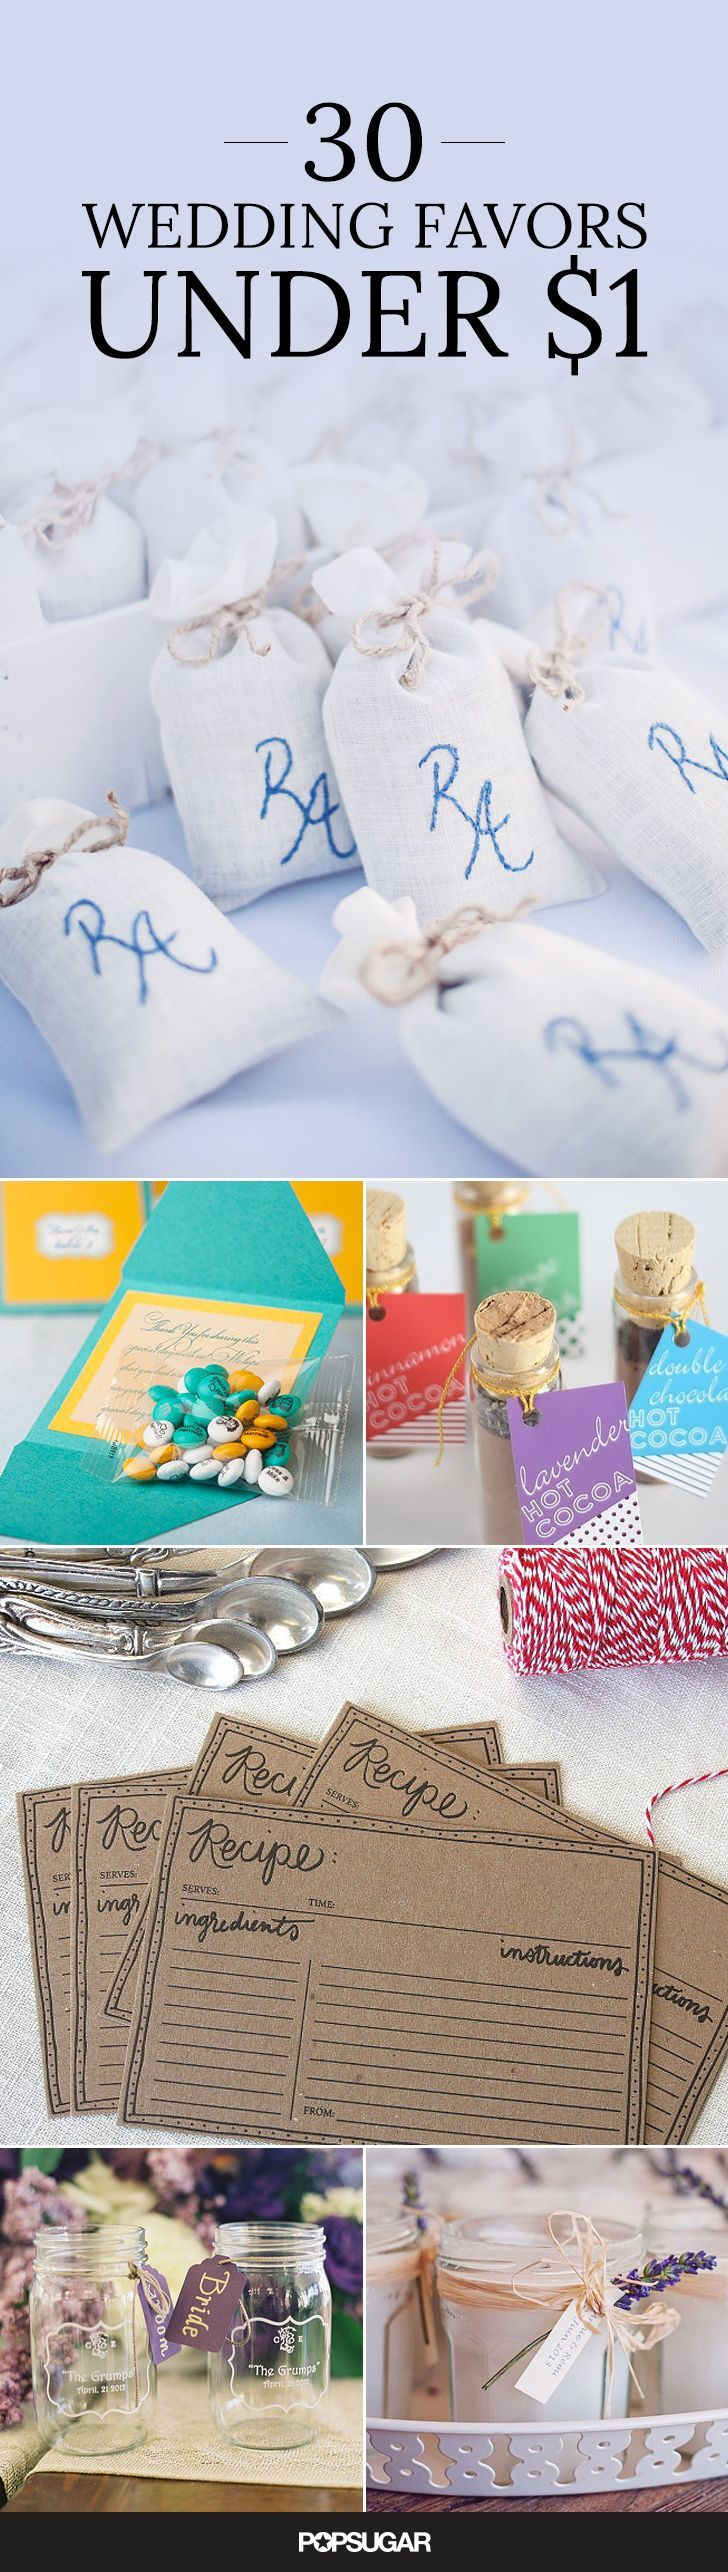 ideas for beach wedding party favors%0A    Wedding Favors You Won u    t Believe Cost Under